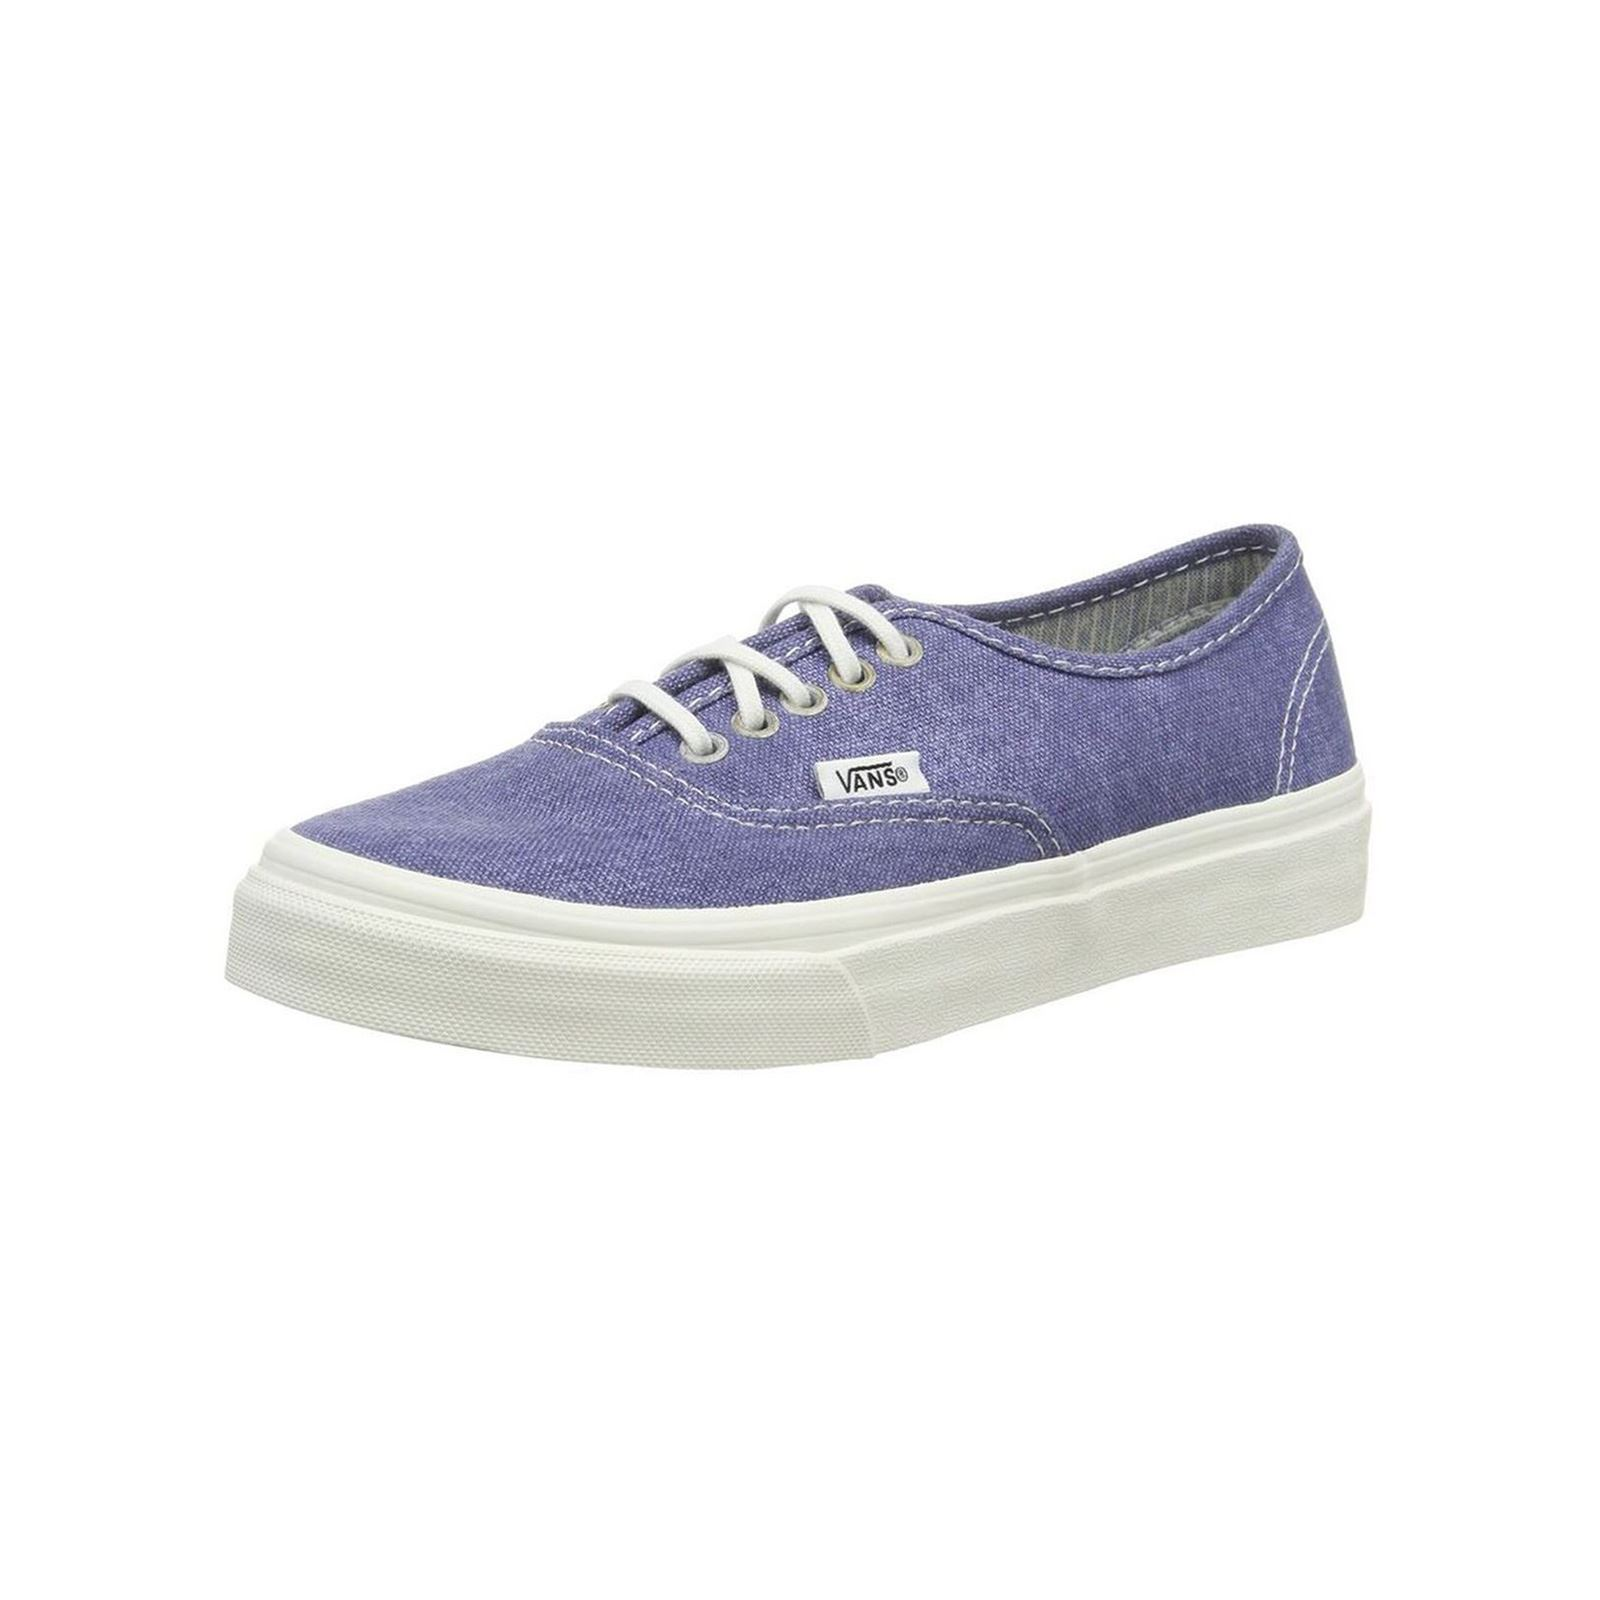 Vans Authentic Slim - Baskets Mode - bleu